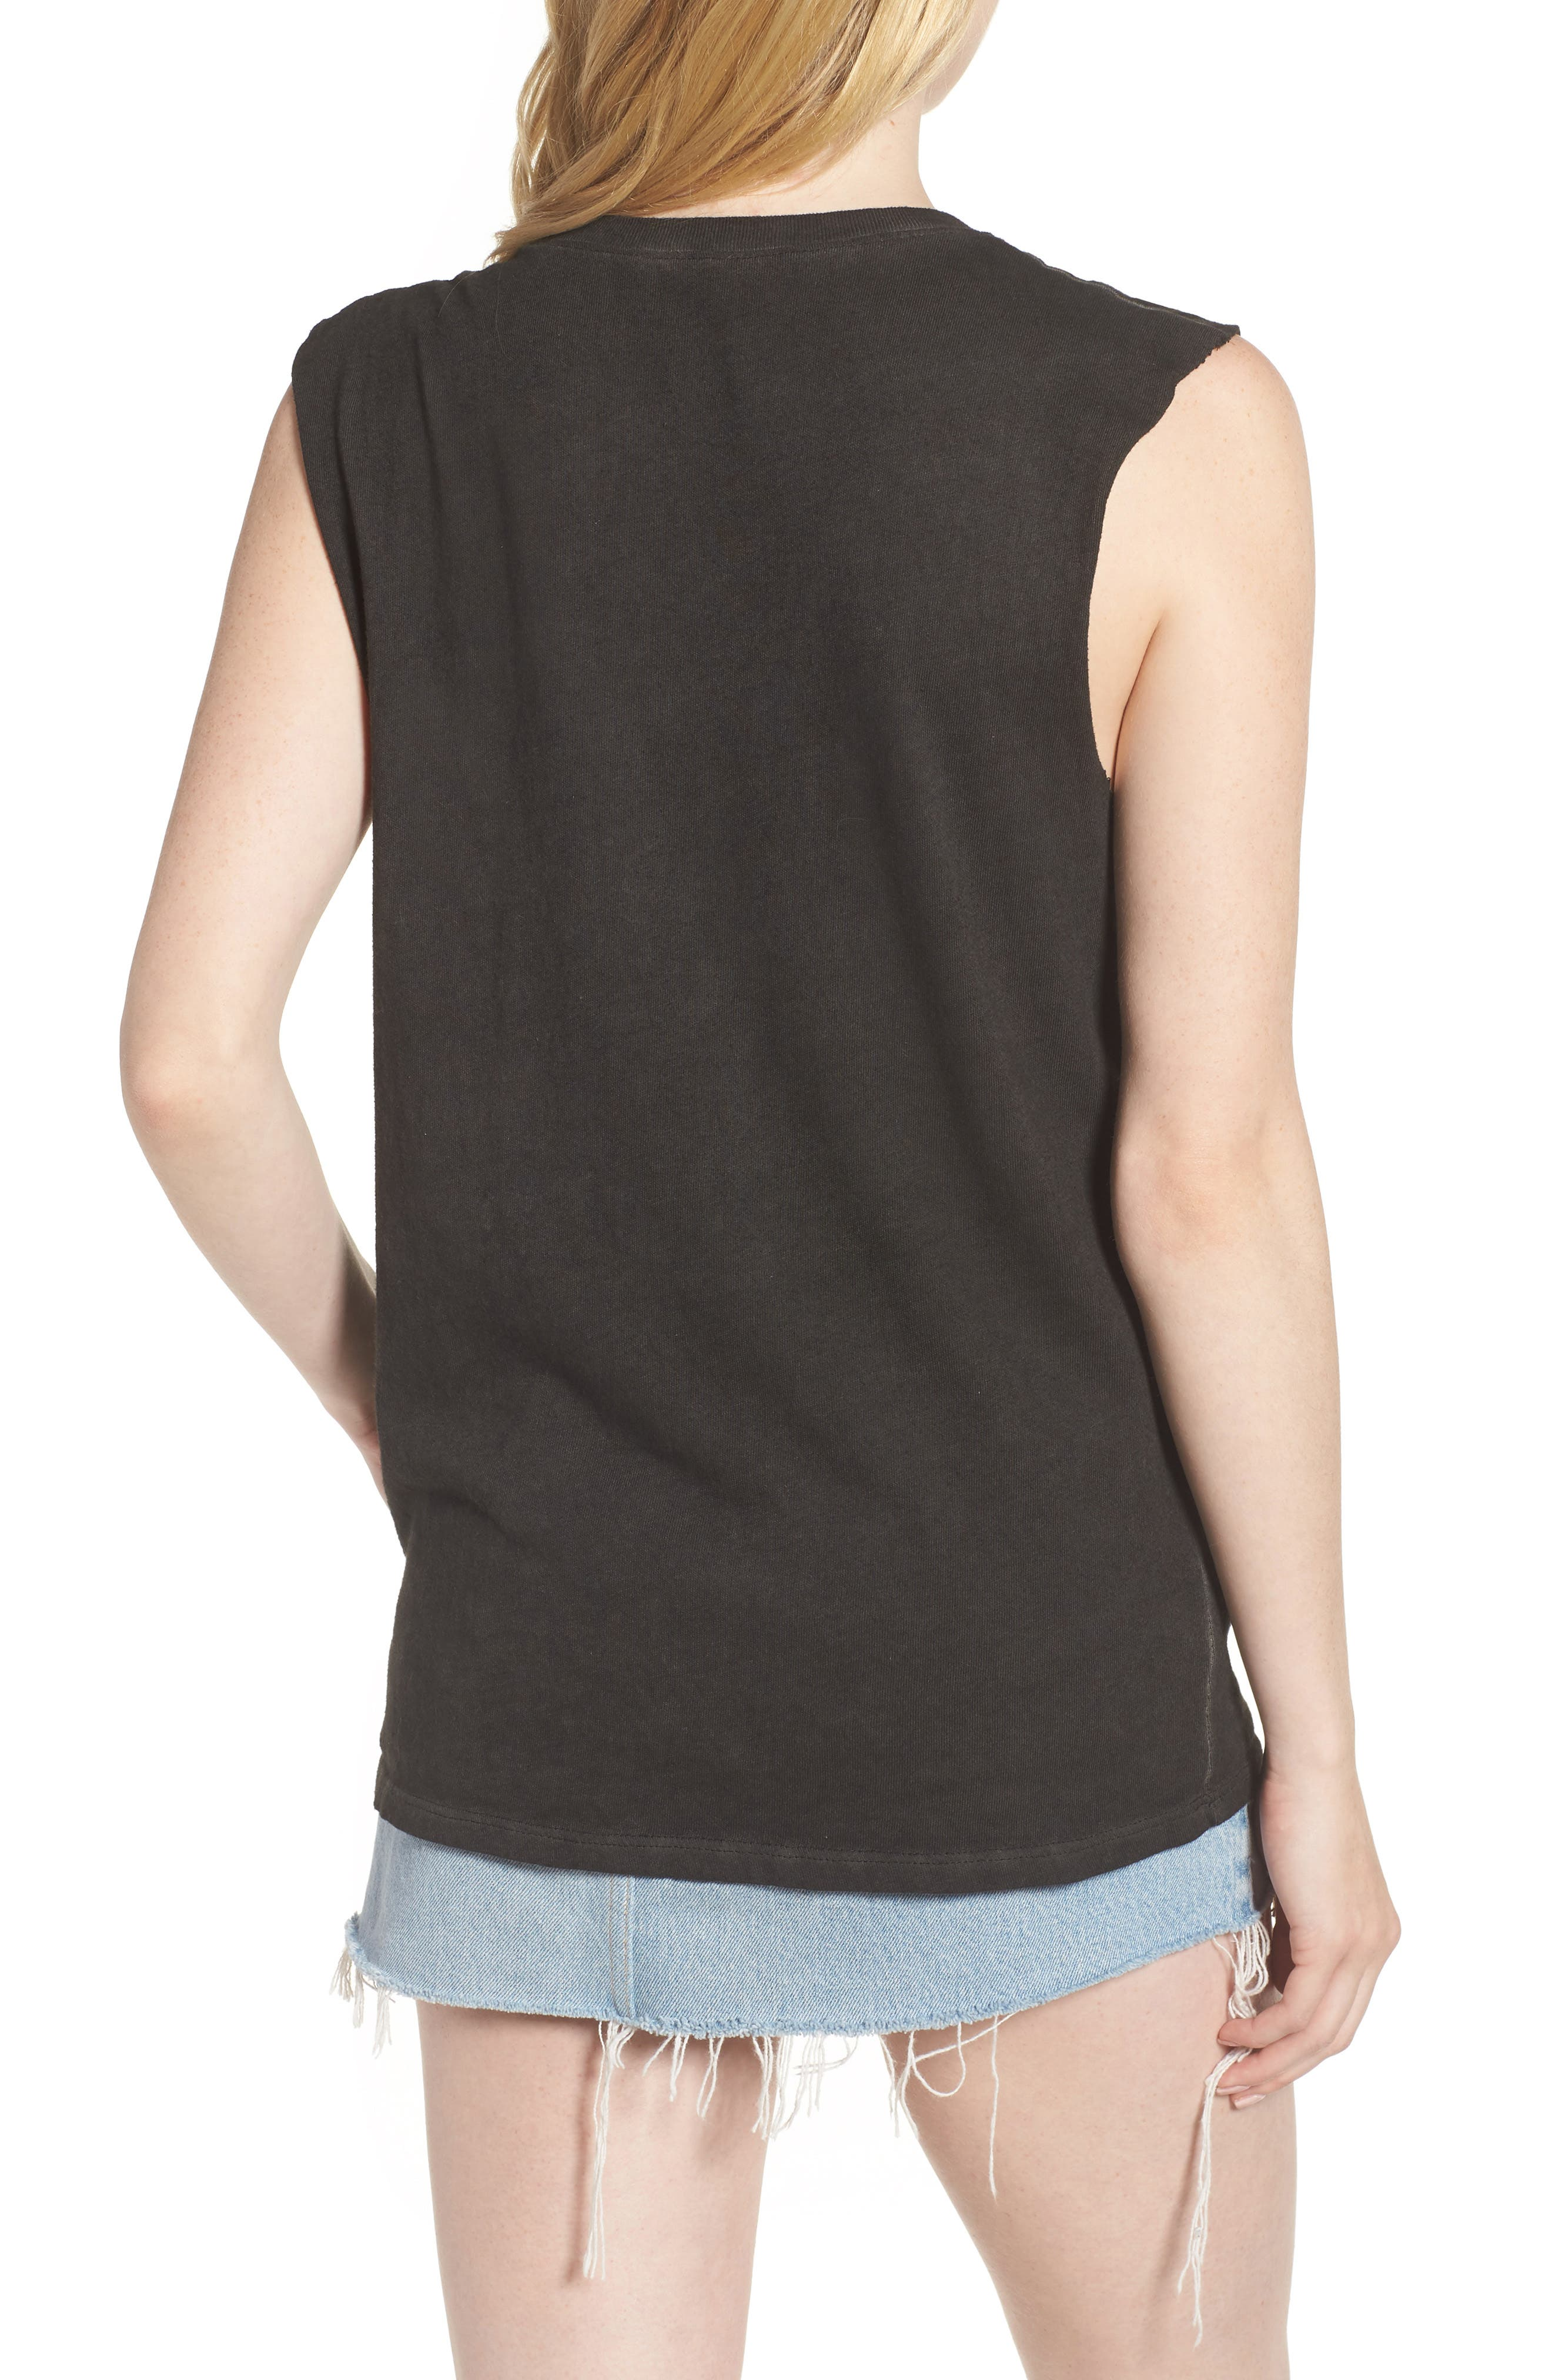 x Grease Muscle Tee,                             Alternate thumbnail 2, color,                             001